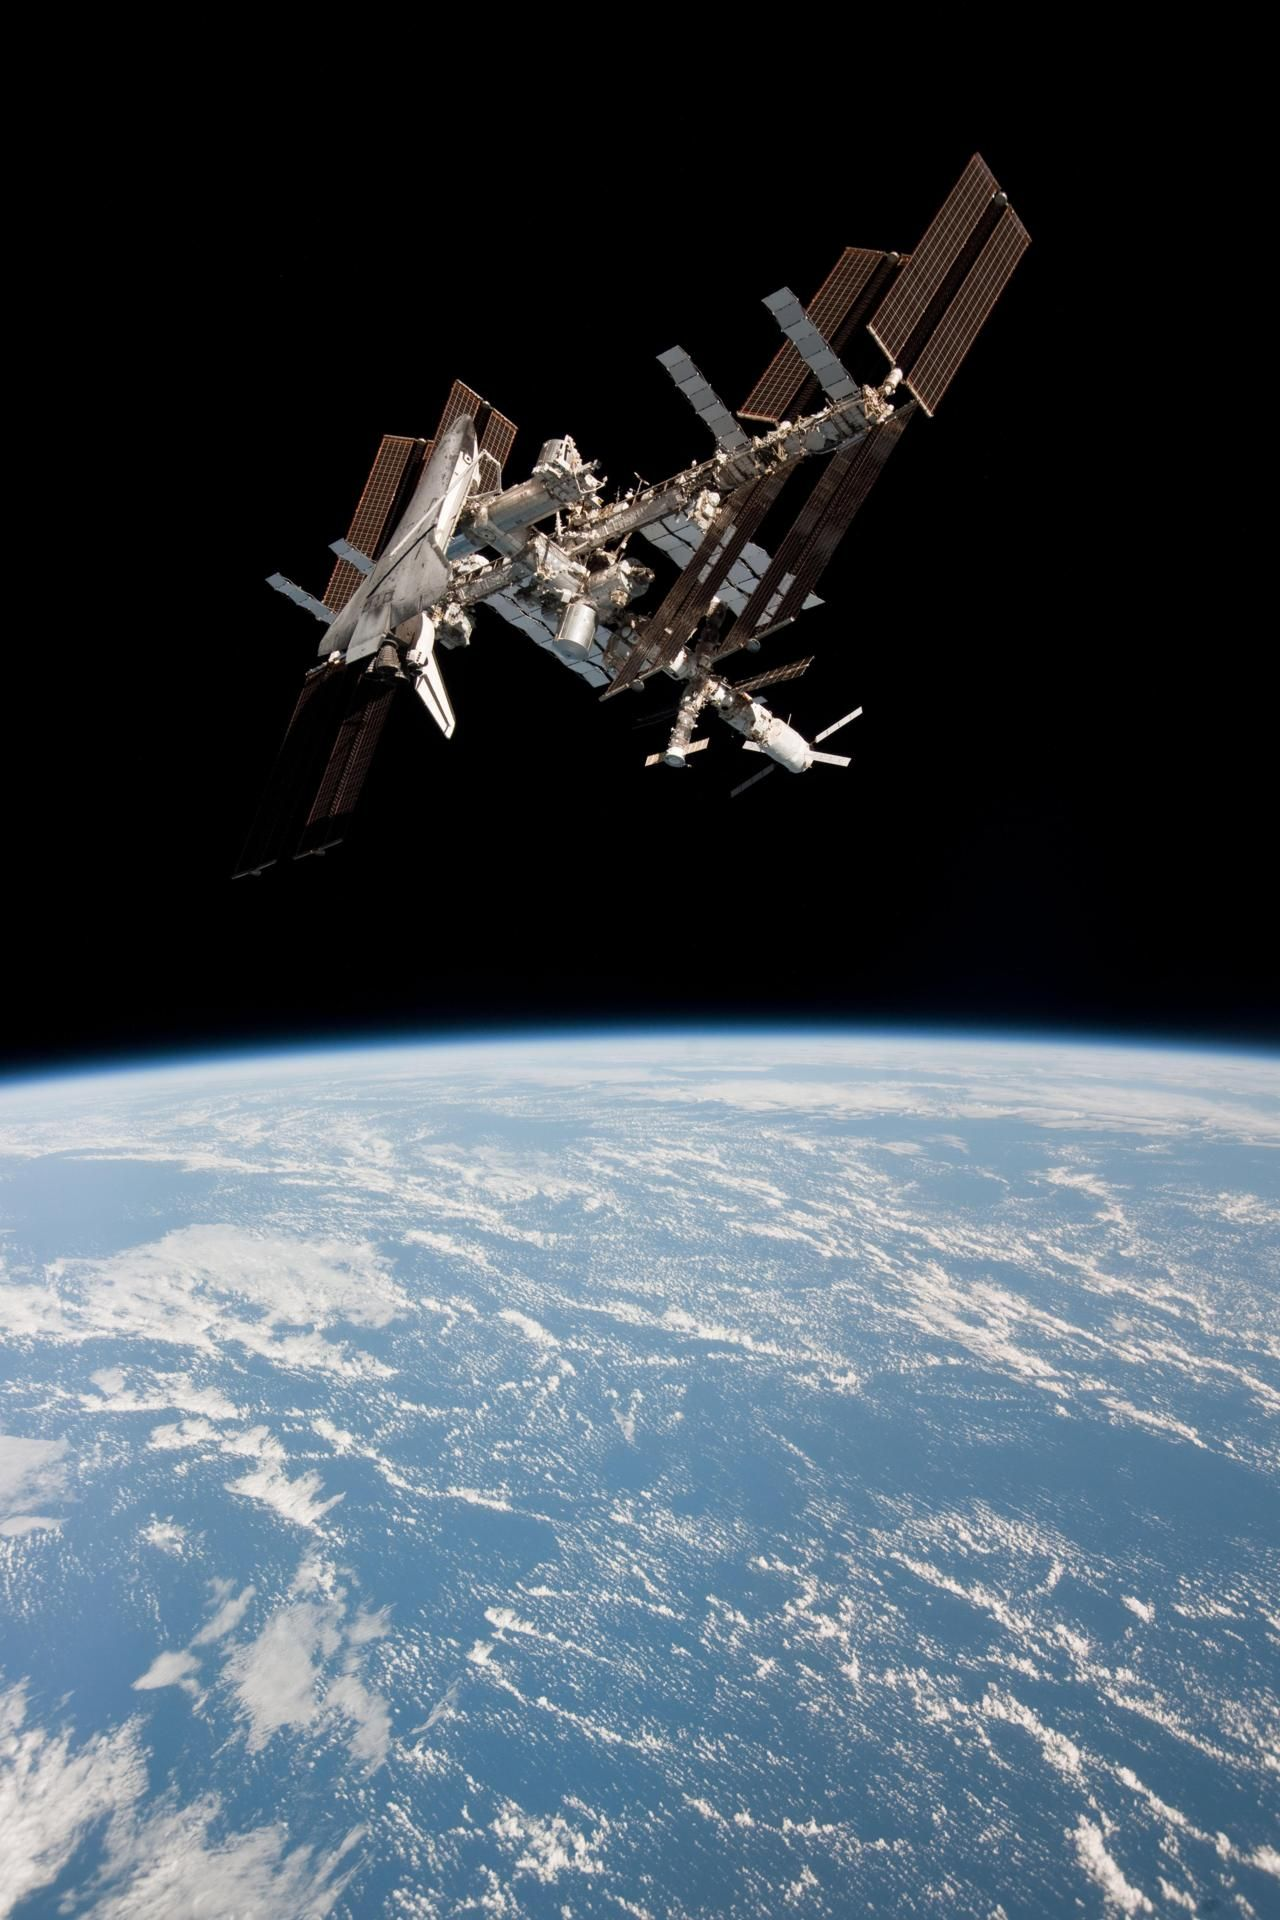 space shuttle iss - photo #5